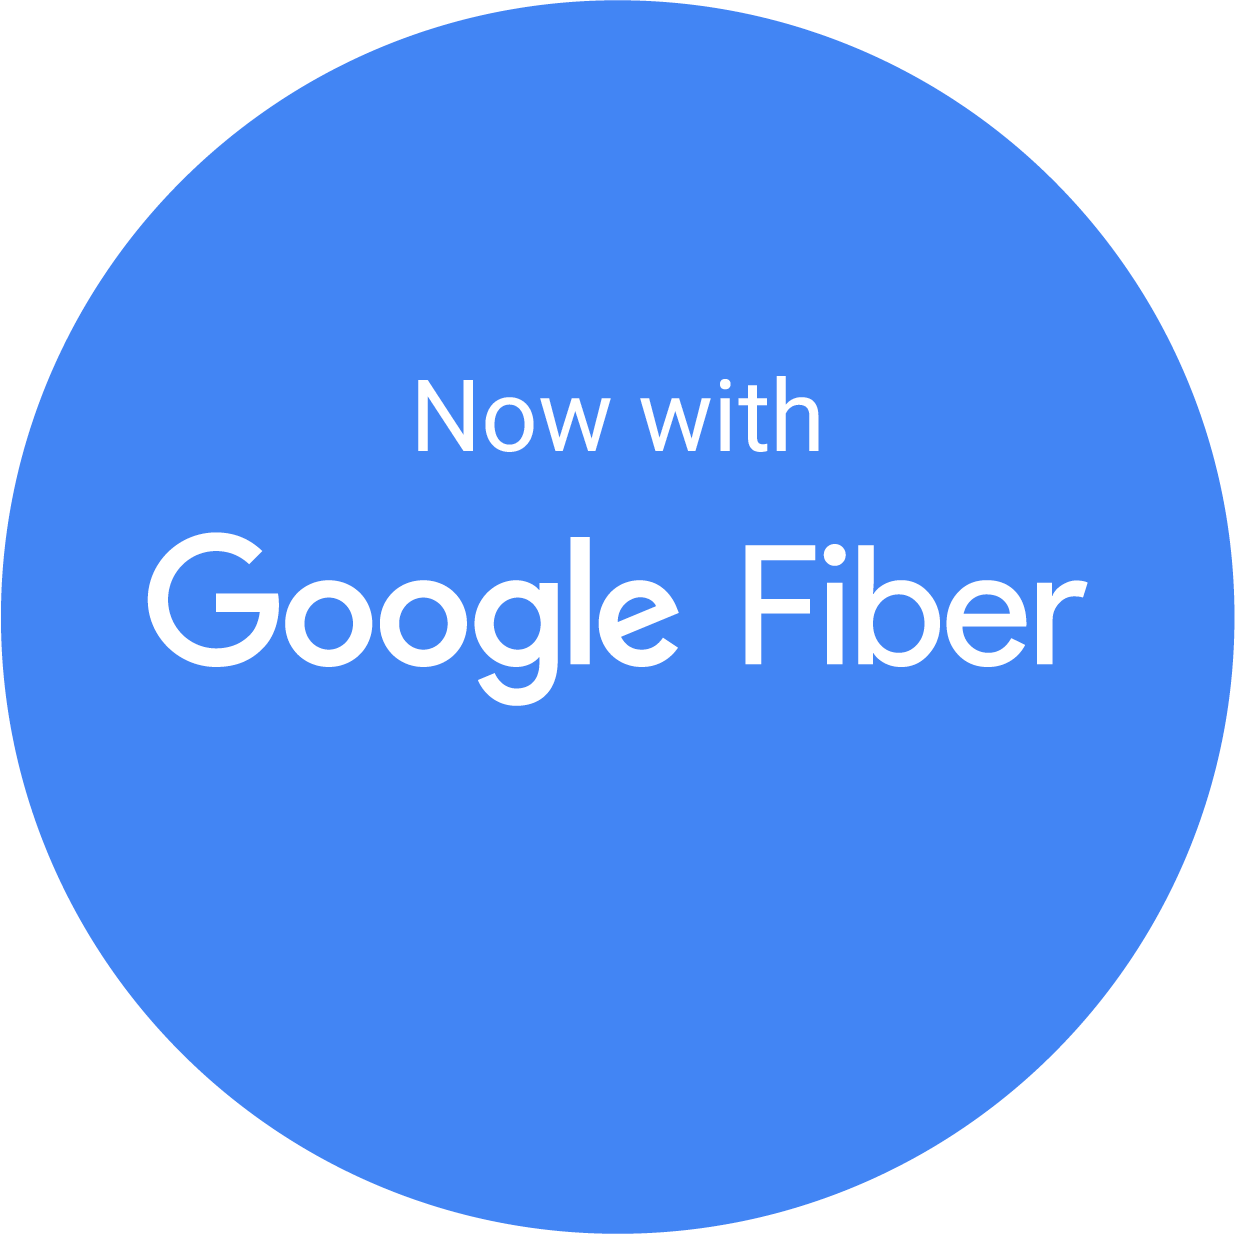 Now with Google Fiber badge